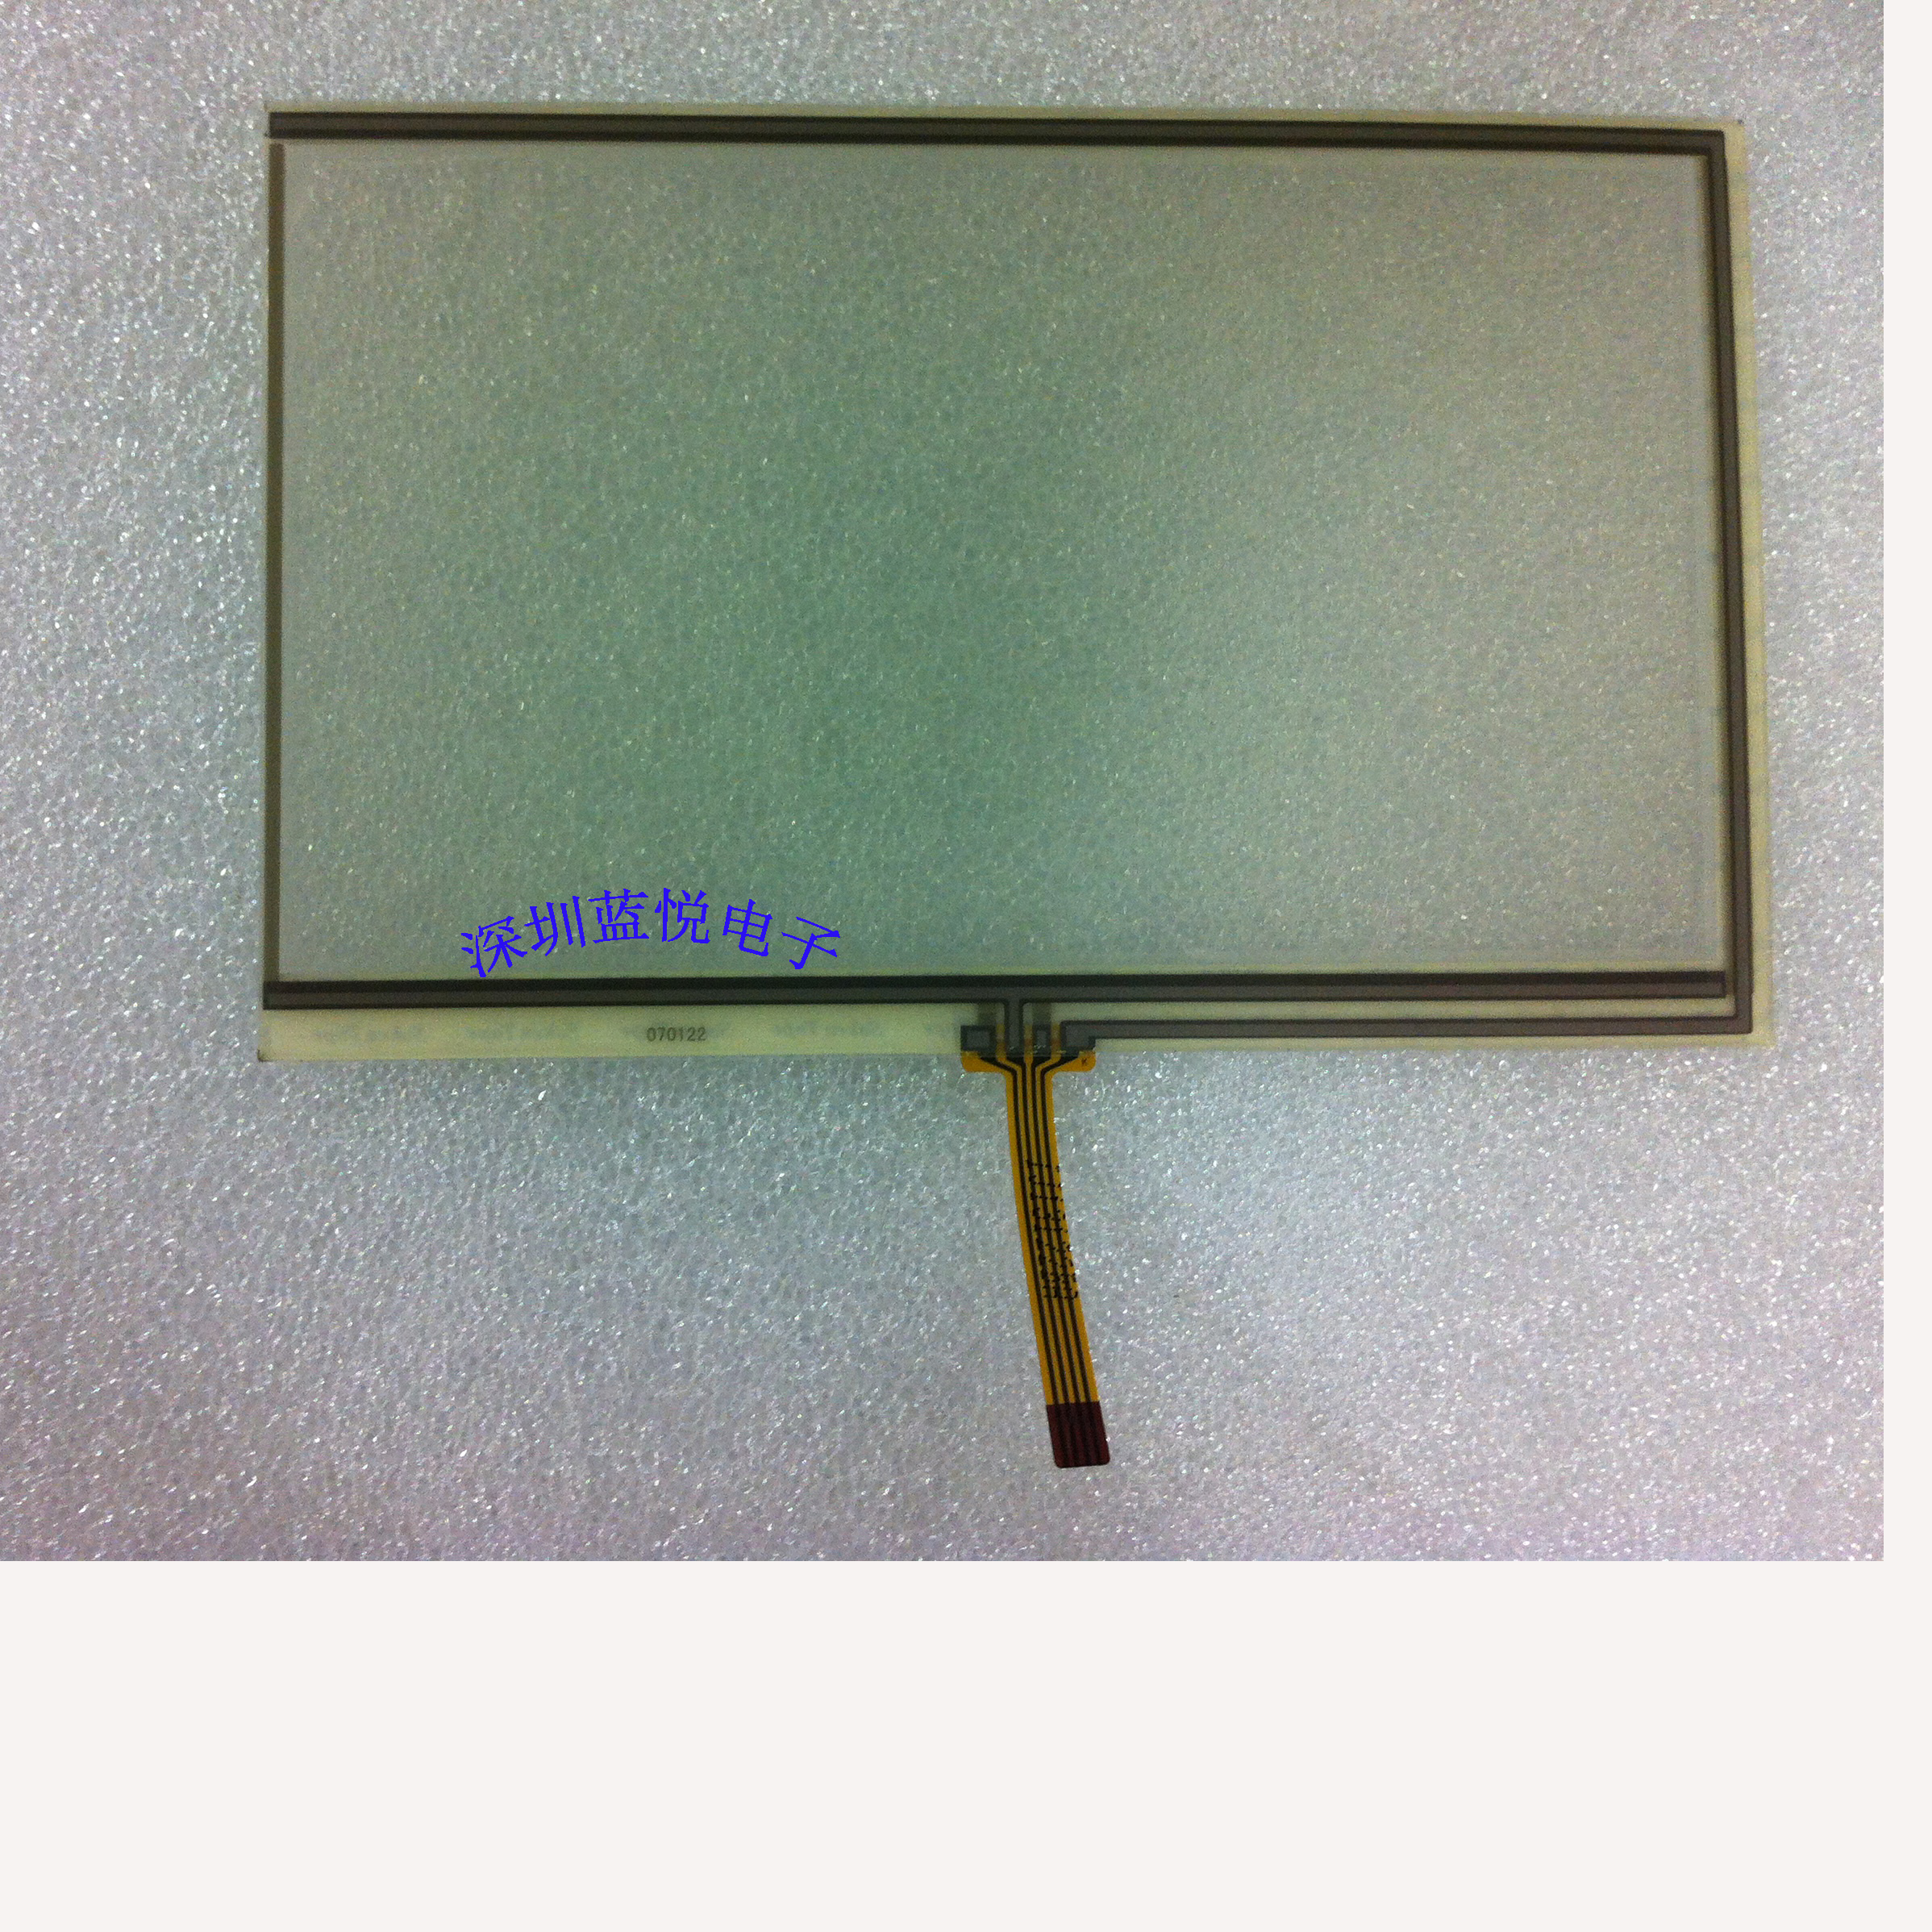 7 four wire resistive touch screen 165 104 adhesive